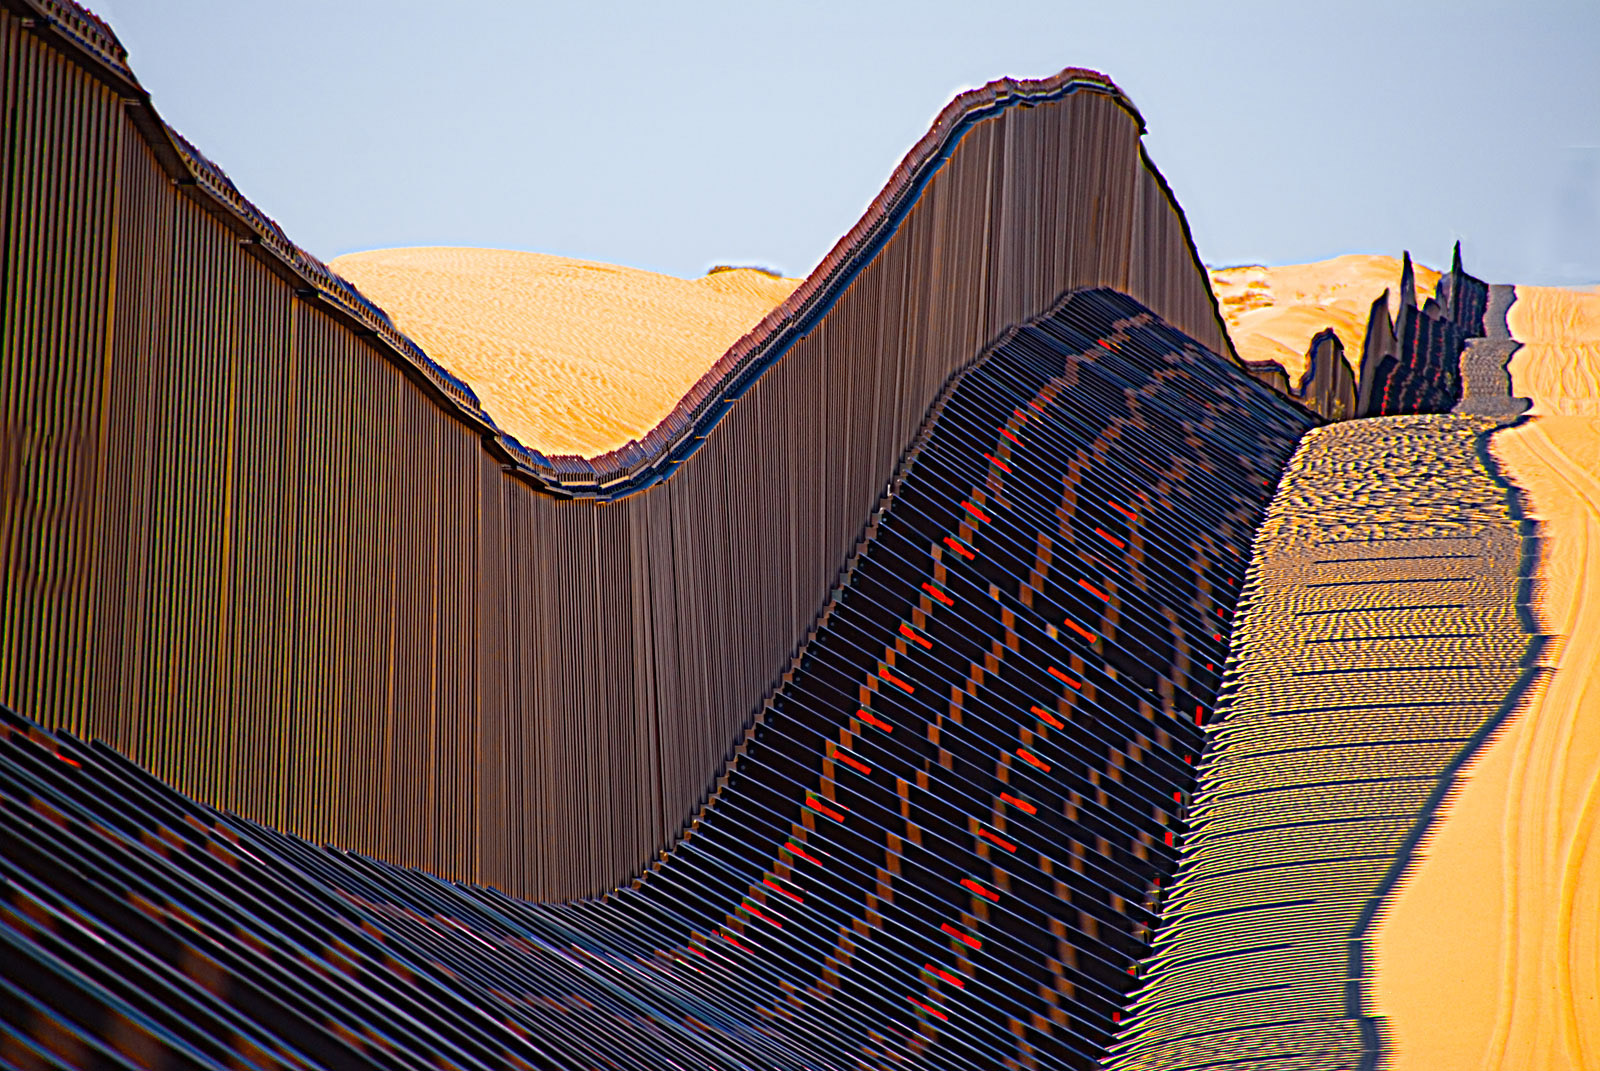 A high-tech adjustable section of the US-Mexico border fence running through the Algodones dunes in California, January 2018